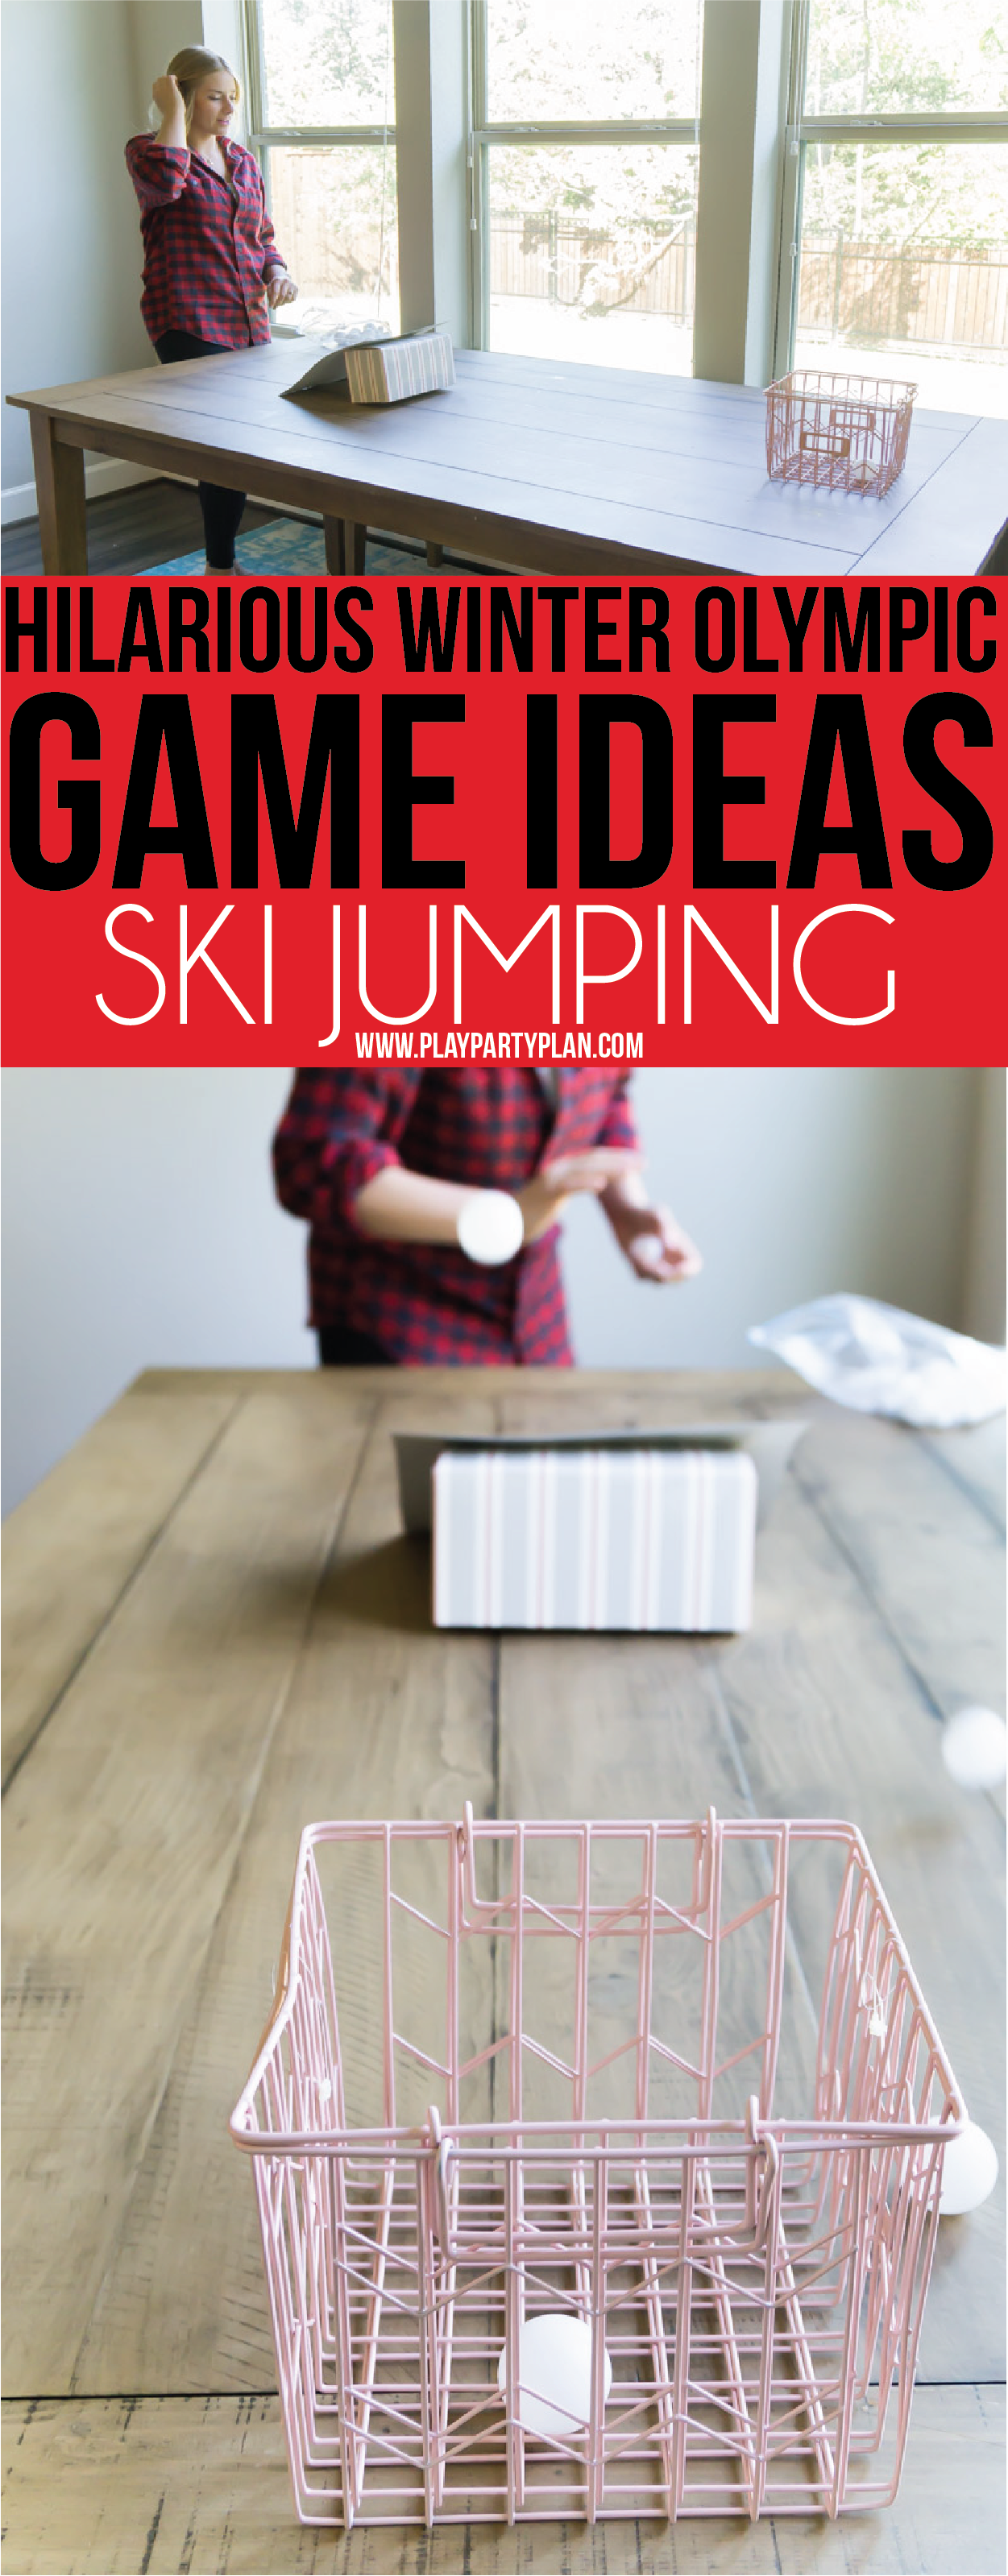 6c64eb2f345 Olympic themed party games inspired by Winter Olympic sports ...